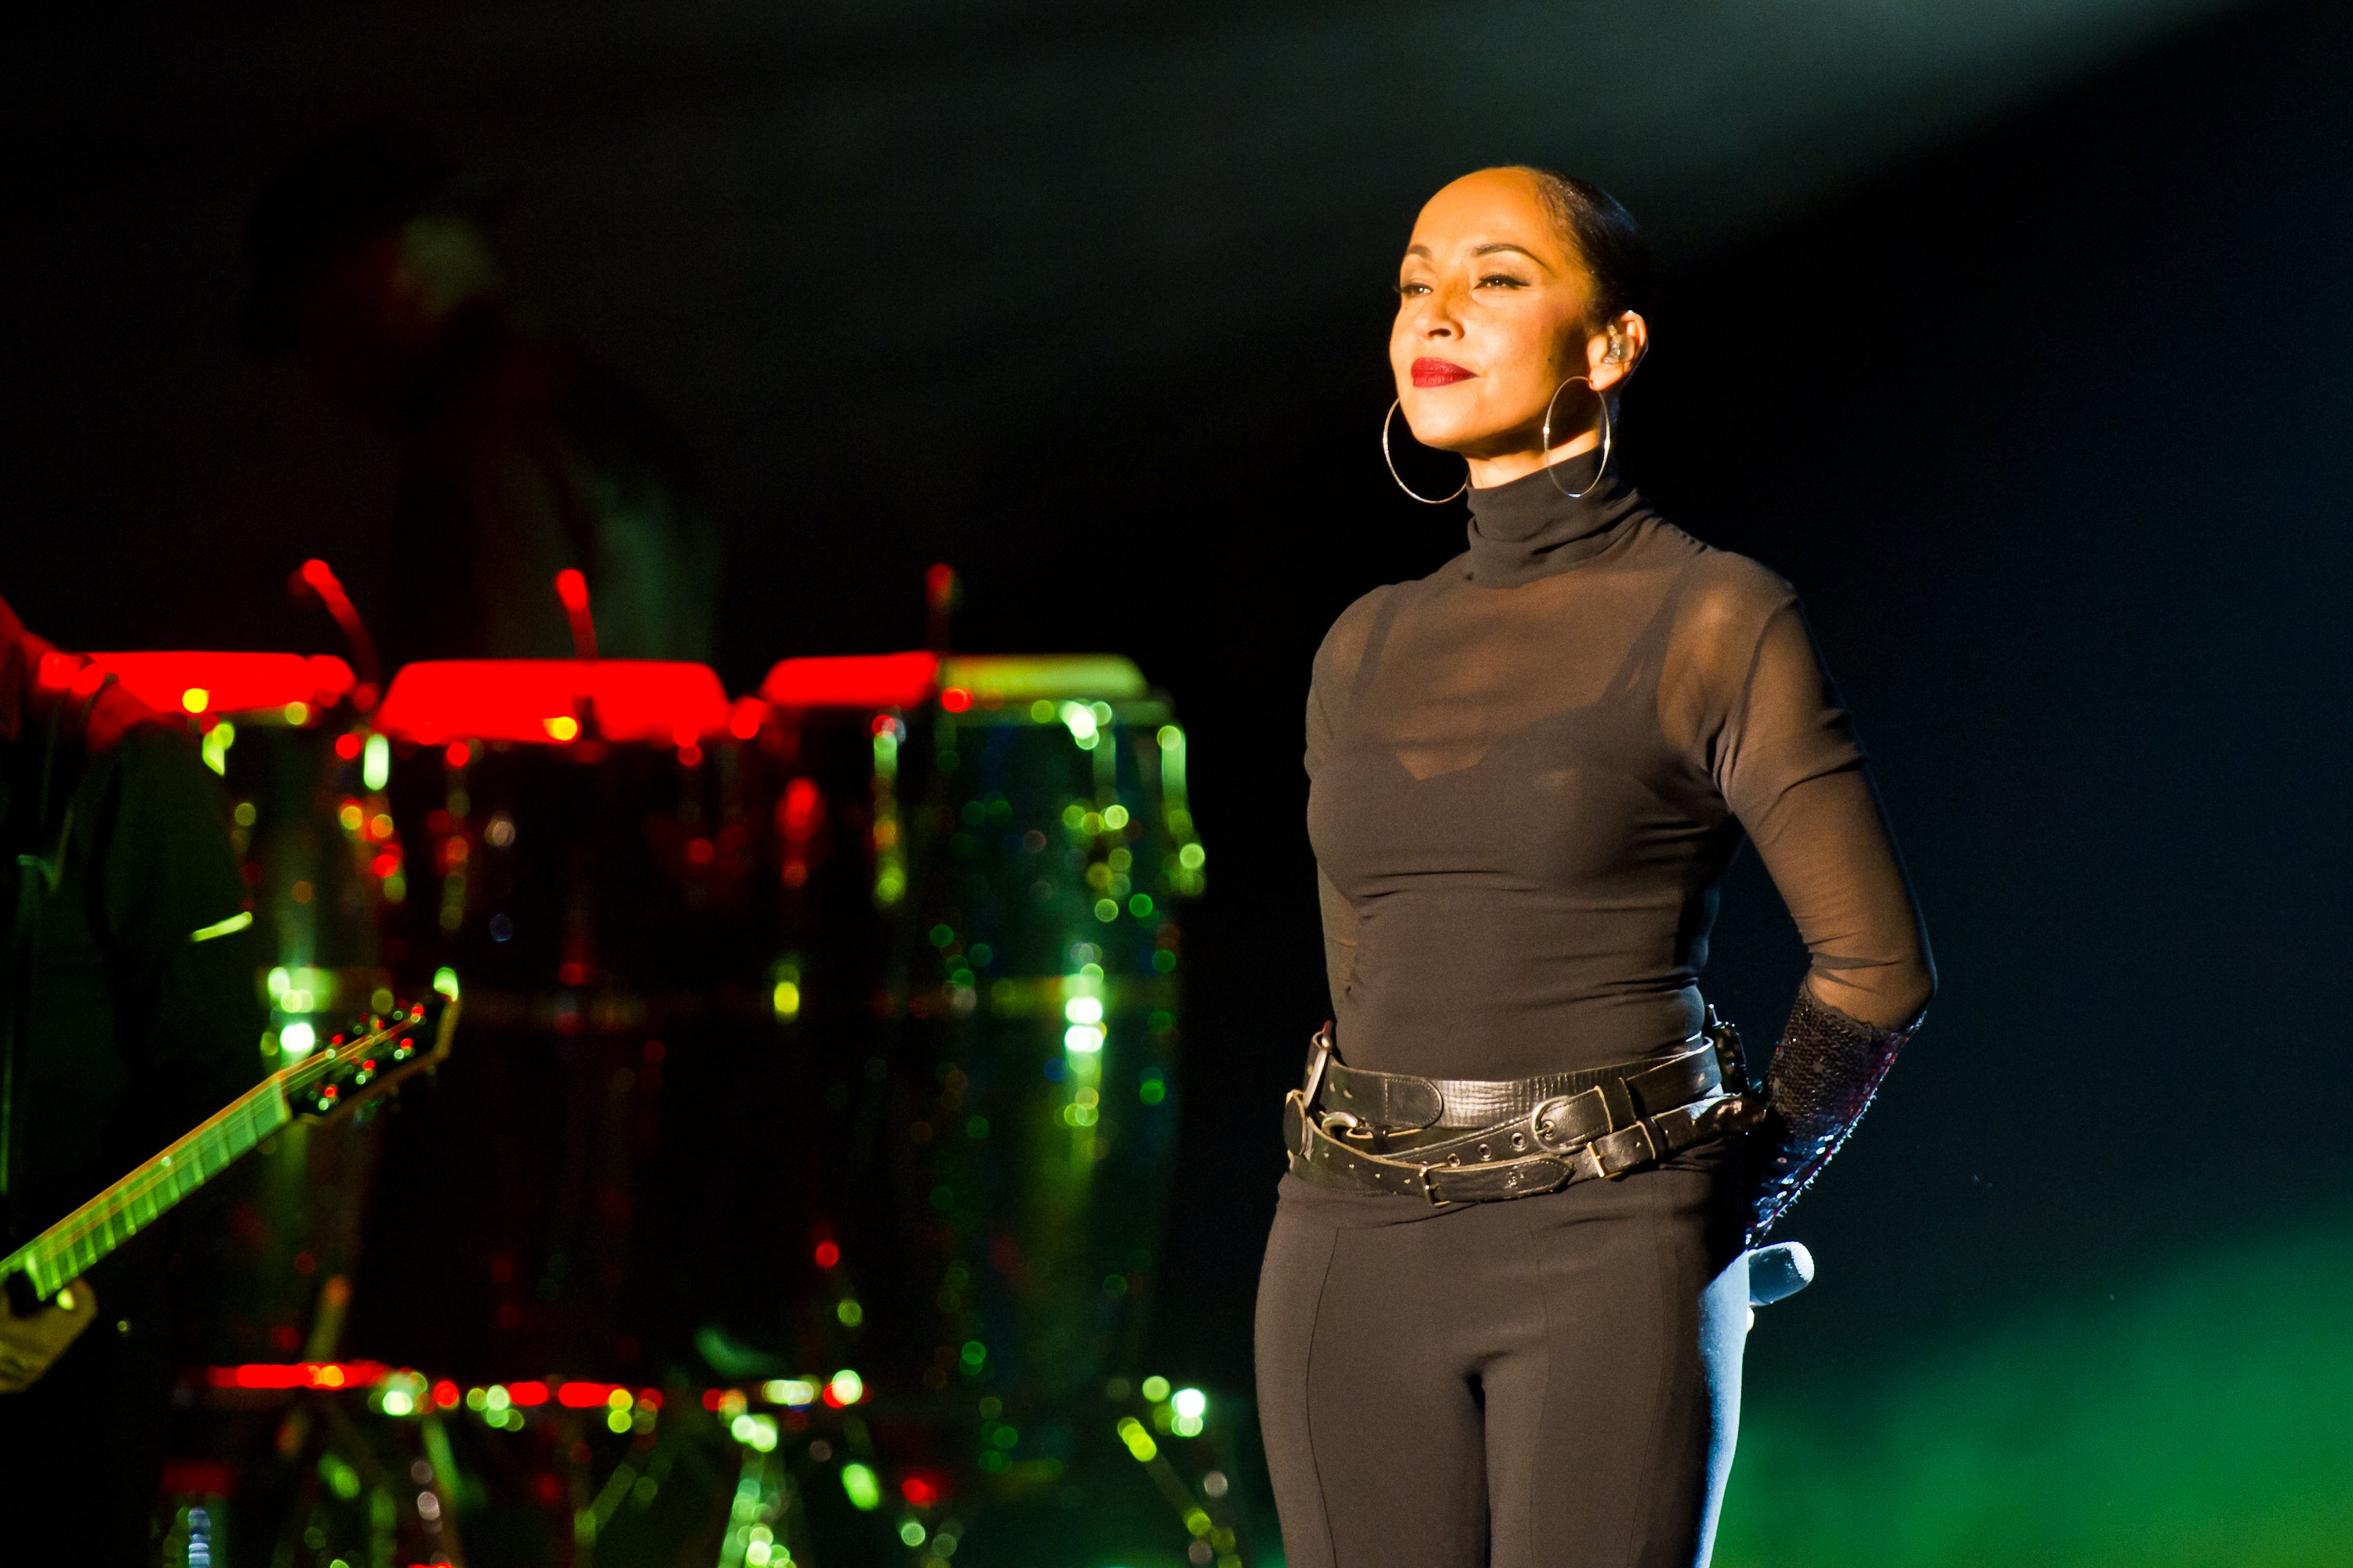 Sade performs at Palais Omnisports de Bercy on May 17, 2011 in Paris, France | Source: Getty Images